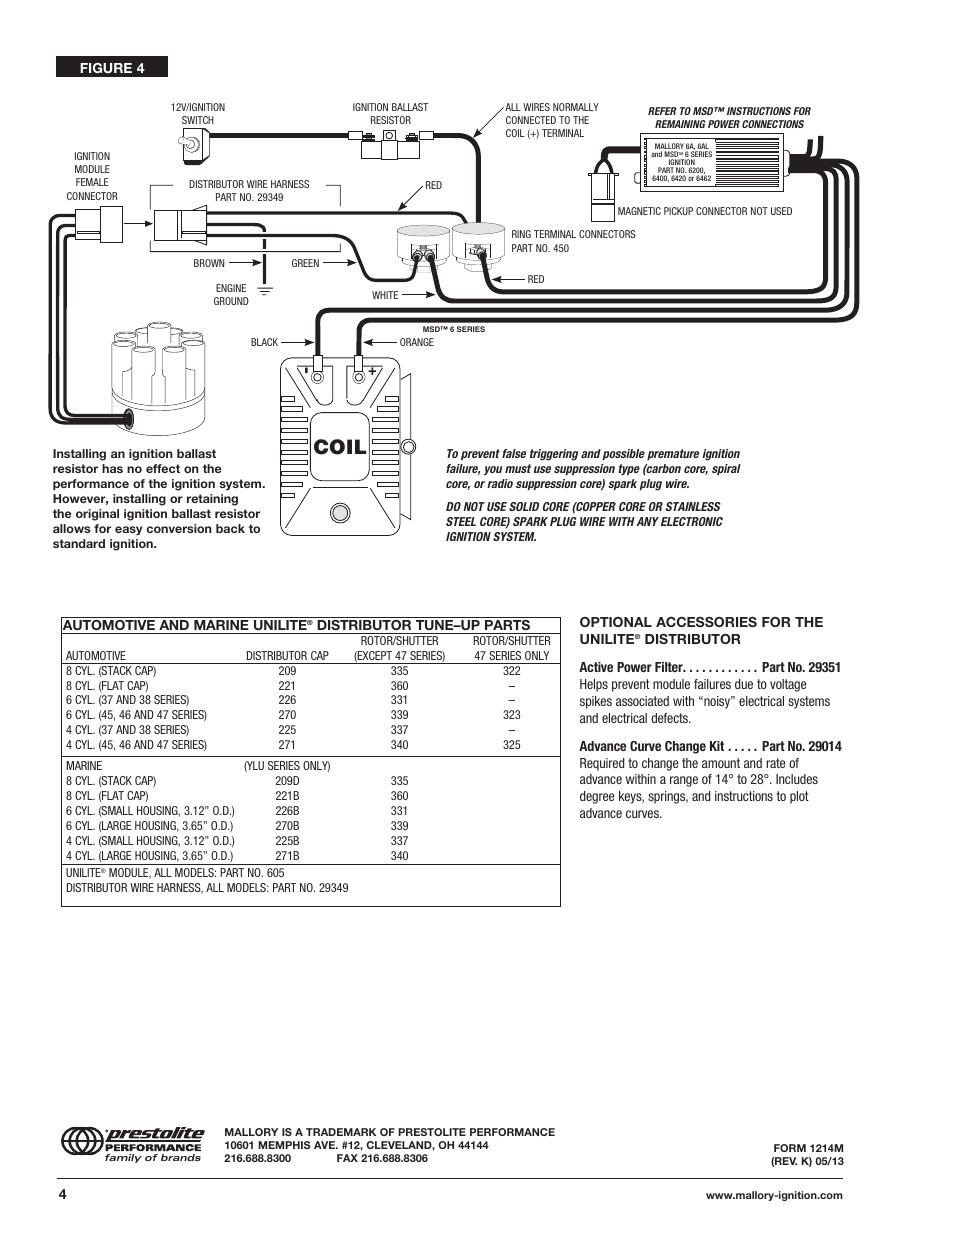 mallory ignition mallory unilite distributor 37_38_45_47 page4 coil mallory ignition mallory unilite distributor 37_38_45_47 mallory unilite distributor wiring diagram at mifinder.co